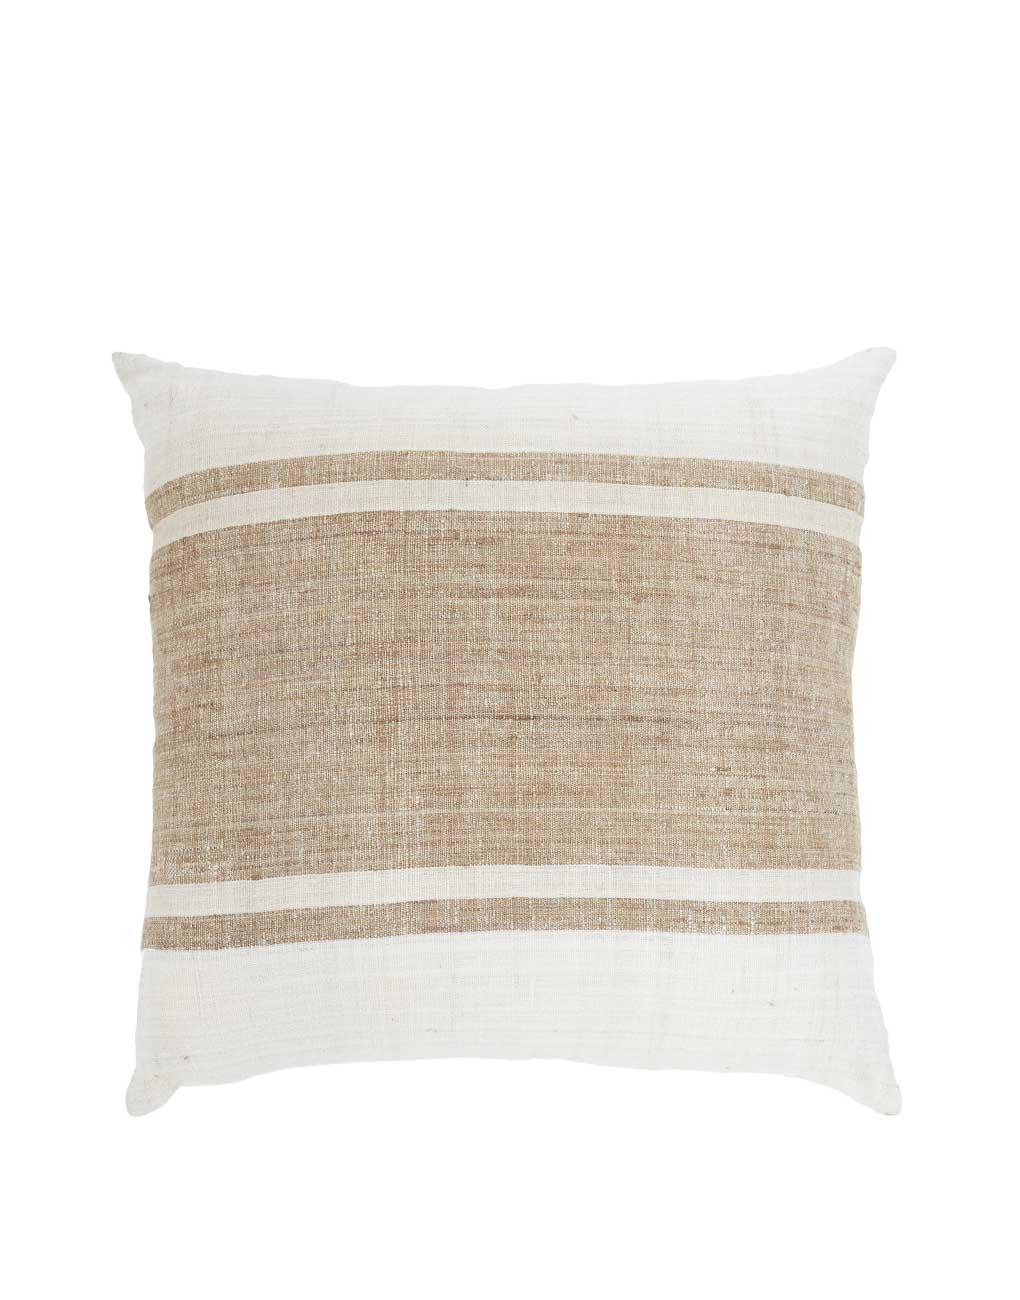 Organic Silk Pillow - Serenity